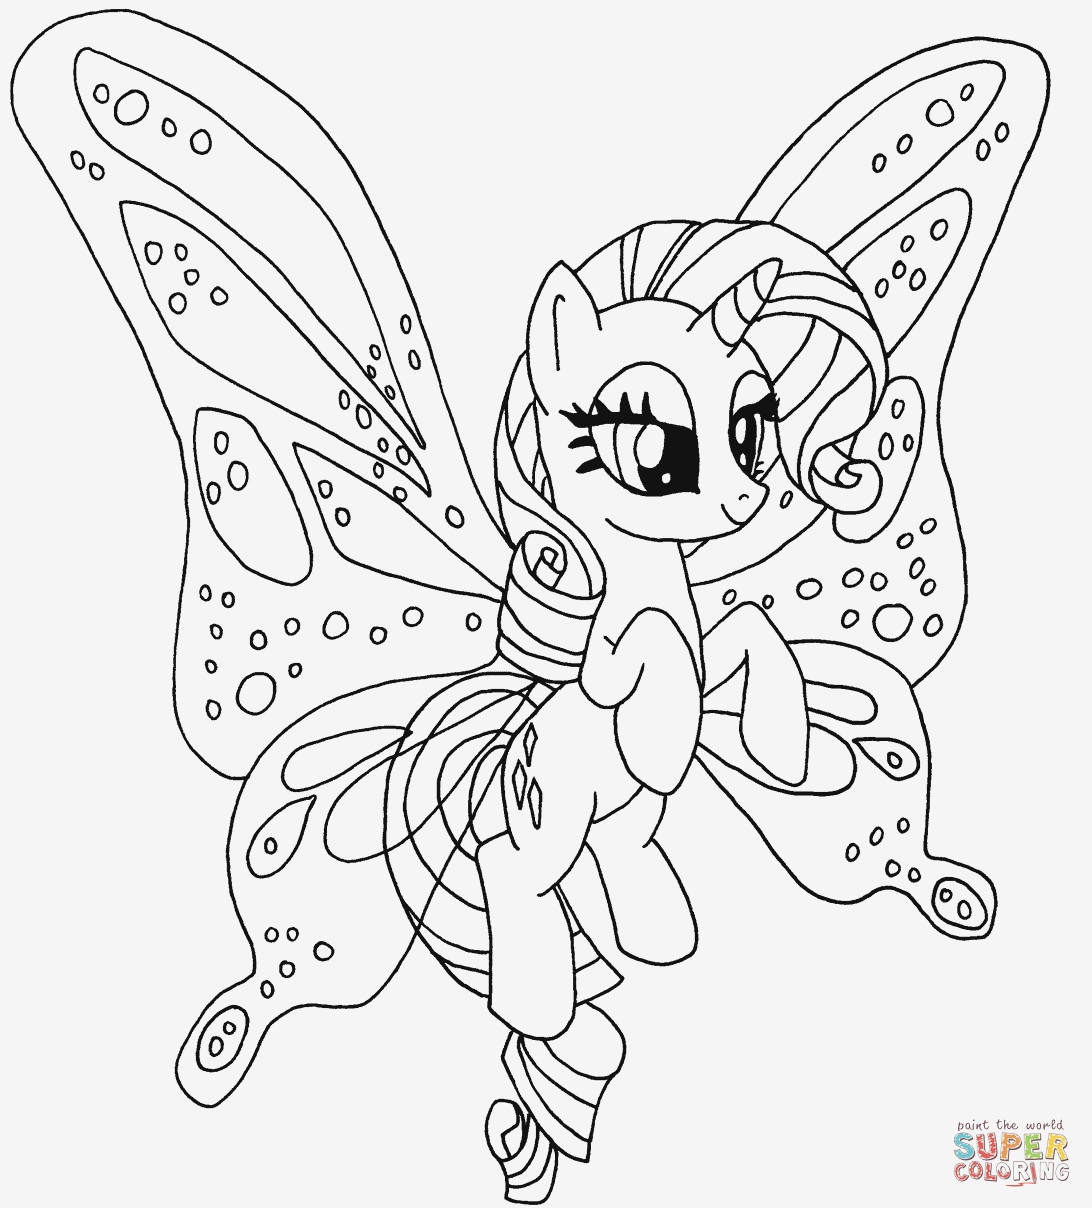 Super Wings Coloring Pages Neu Bilder Zum Ausmalen Bekommen Ausmalbilder Super Wings Fotos